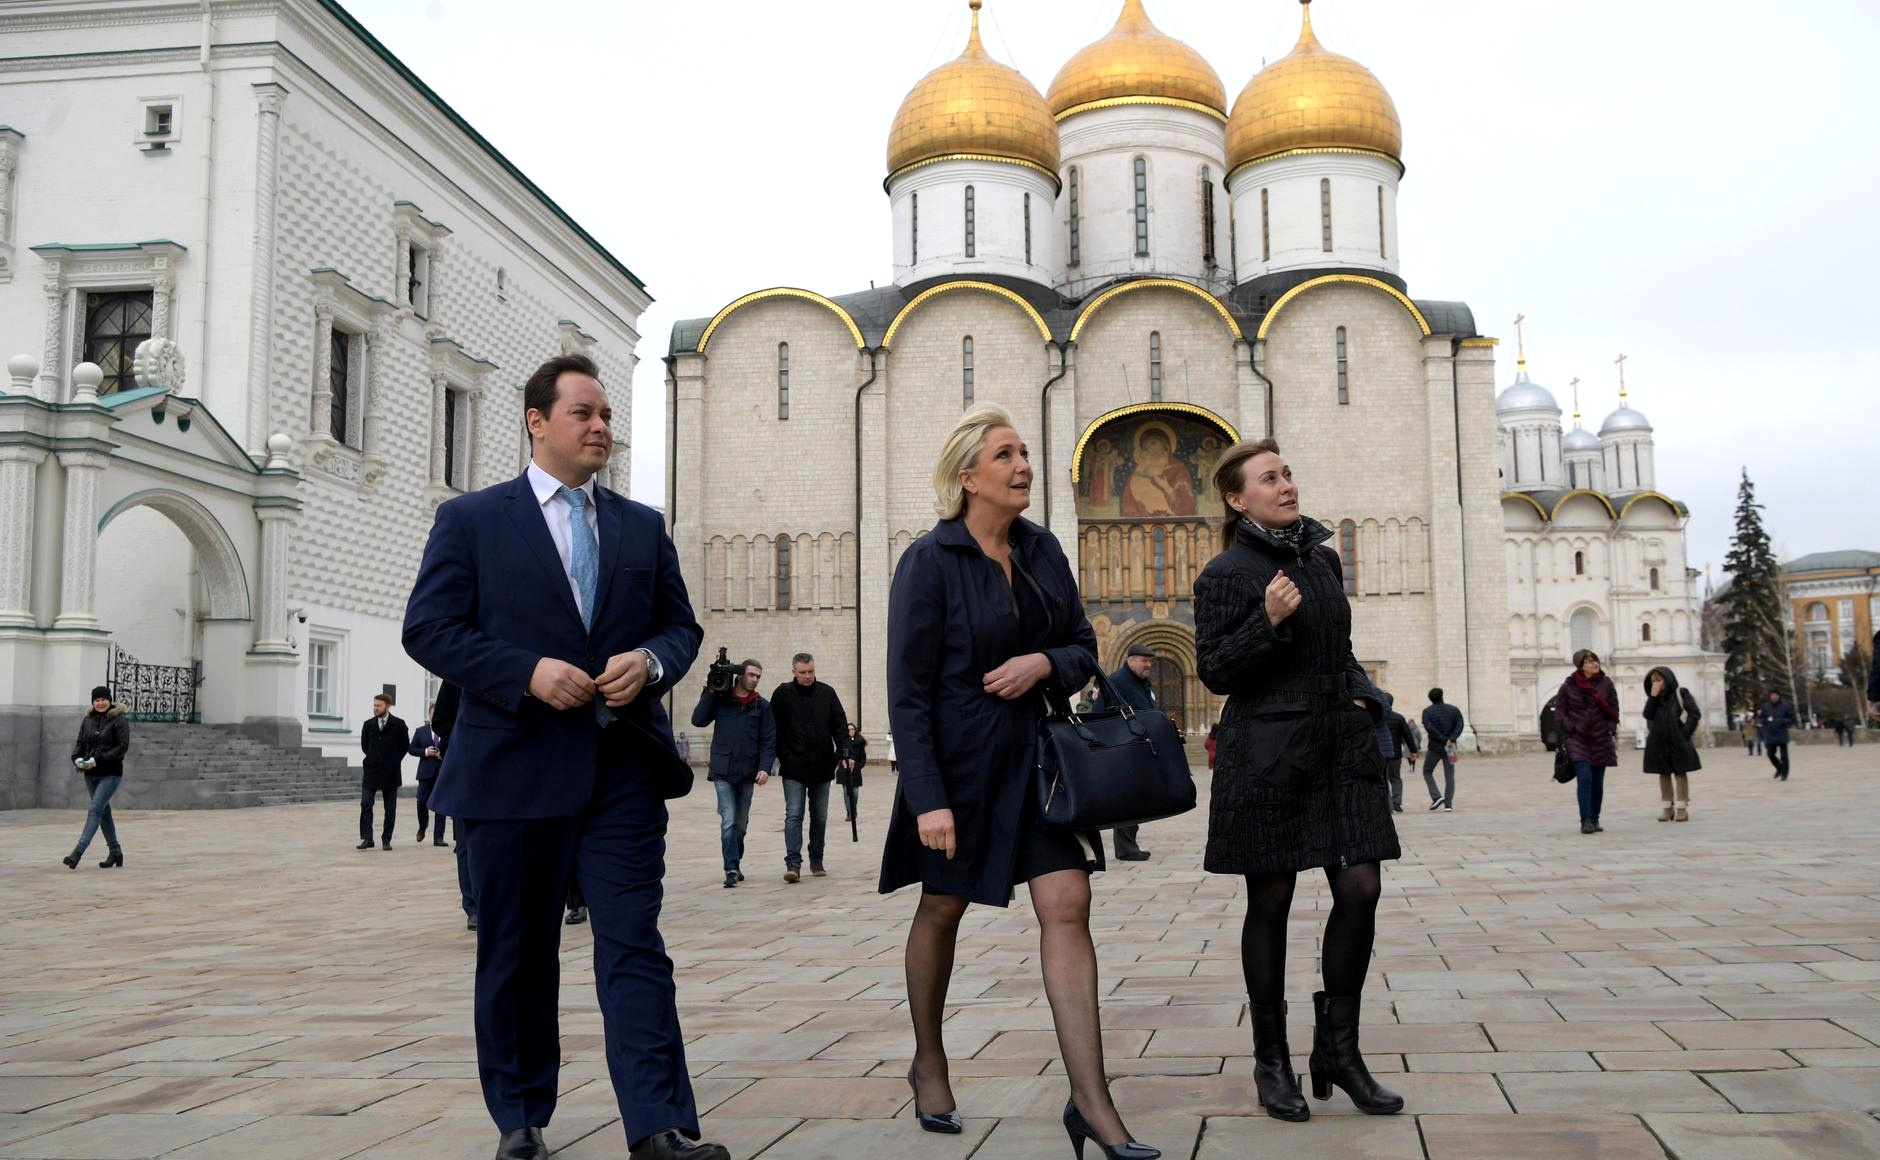 Before the meeting, the French politician visited an exhibition devoted to Louis IX of France and relics of Sainte-Chapelle in the Patriarch's Palace. / Photo: Kremlin.ru